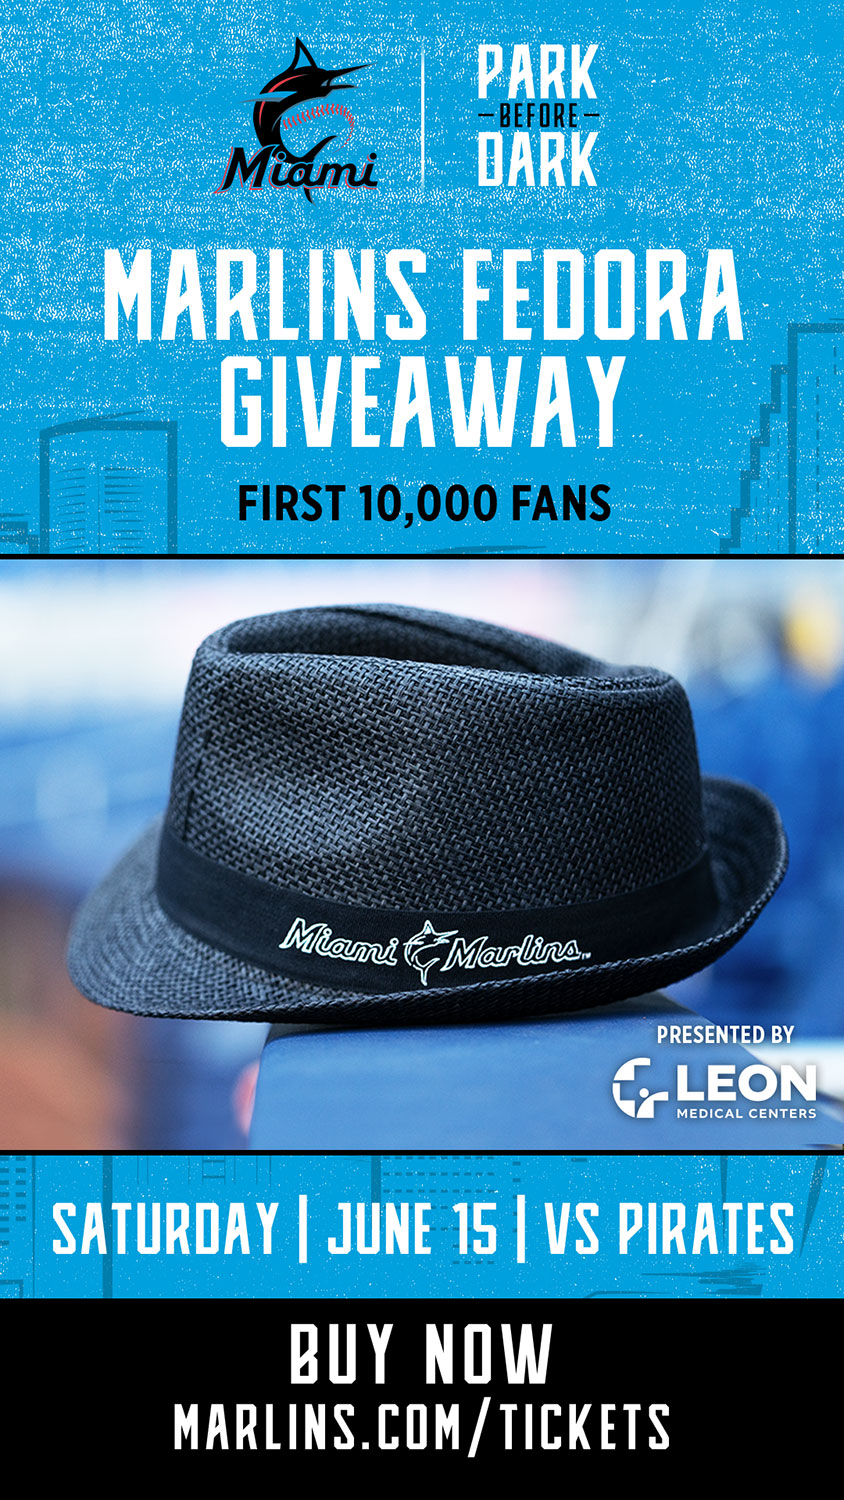 GPE008_Giveaways_Fedora_FINAL_060519.jpg